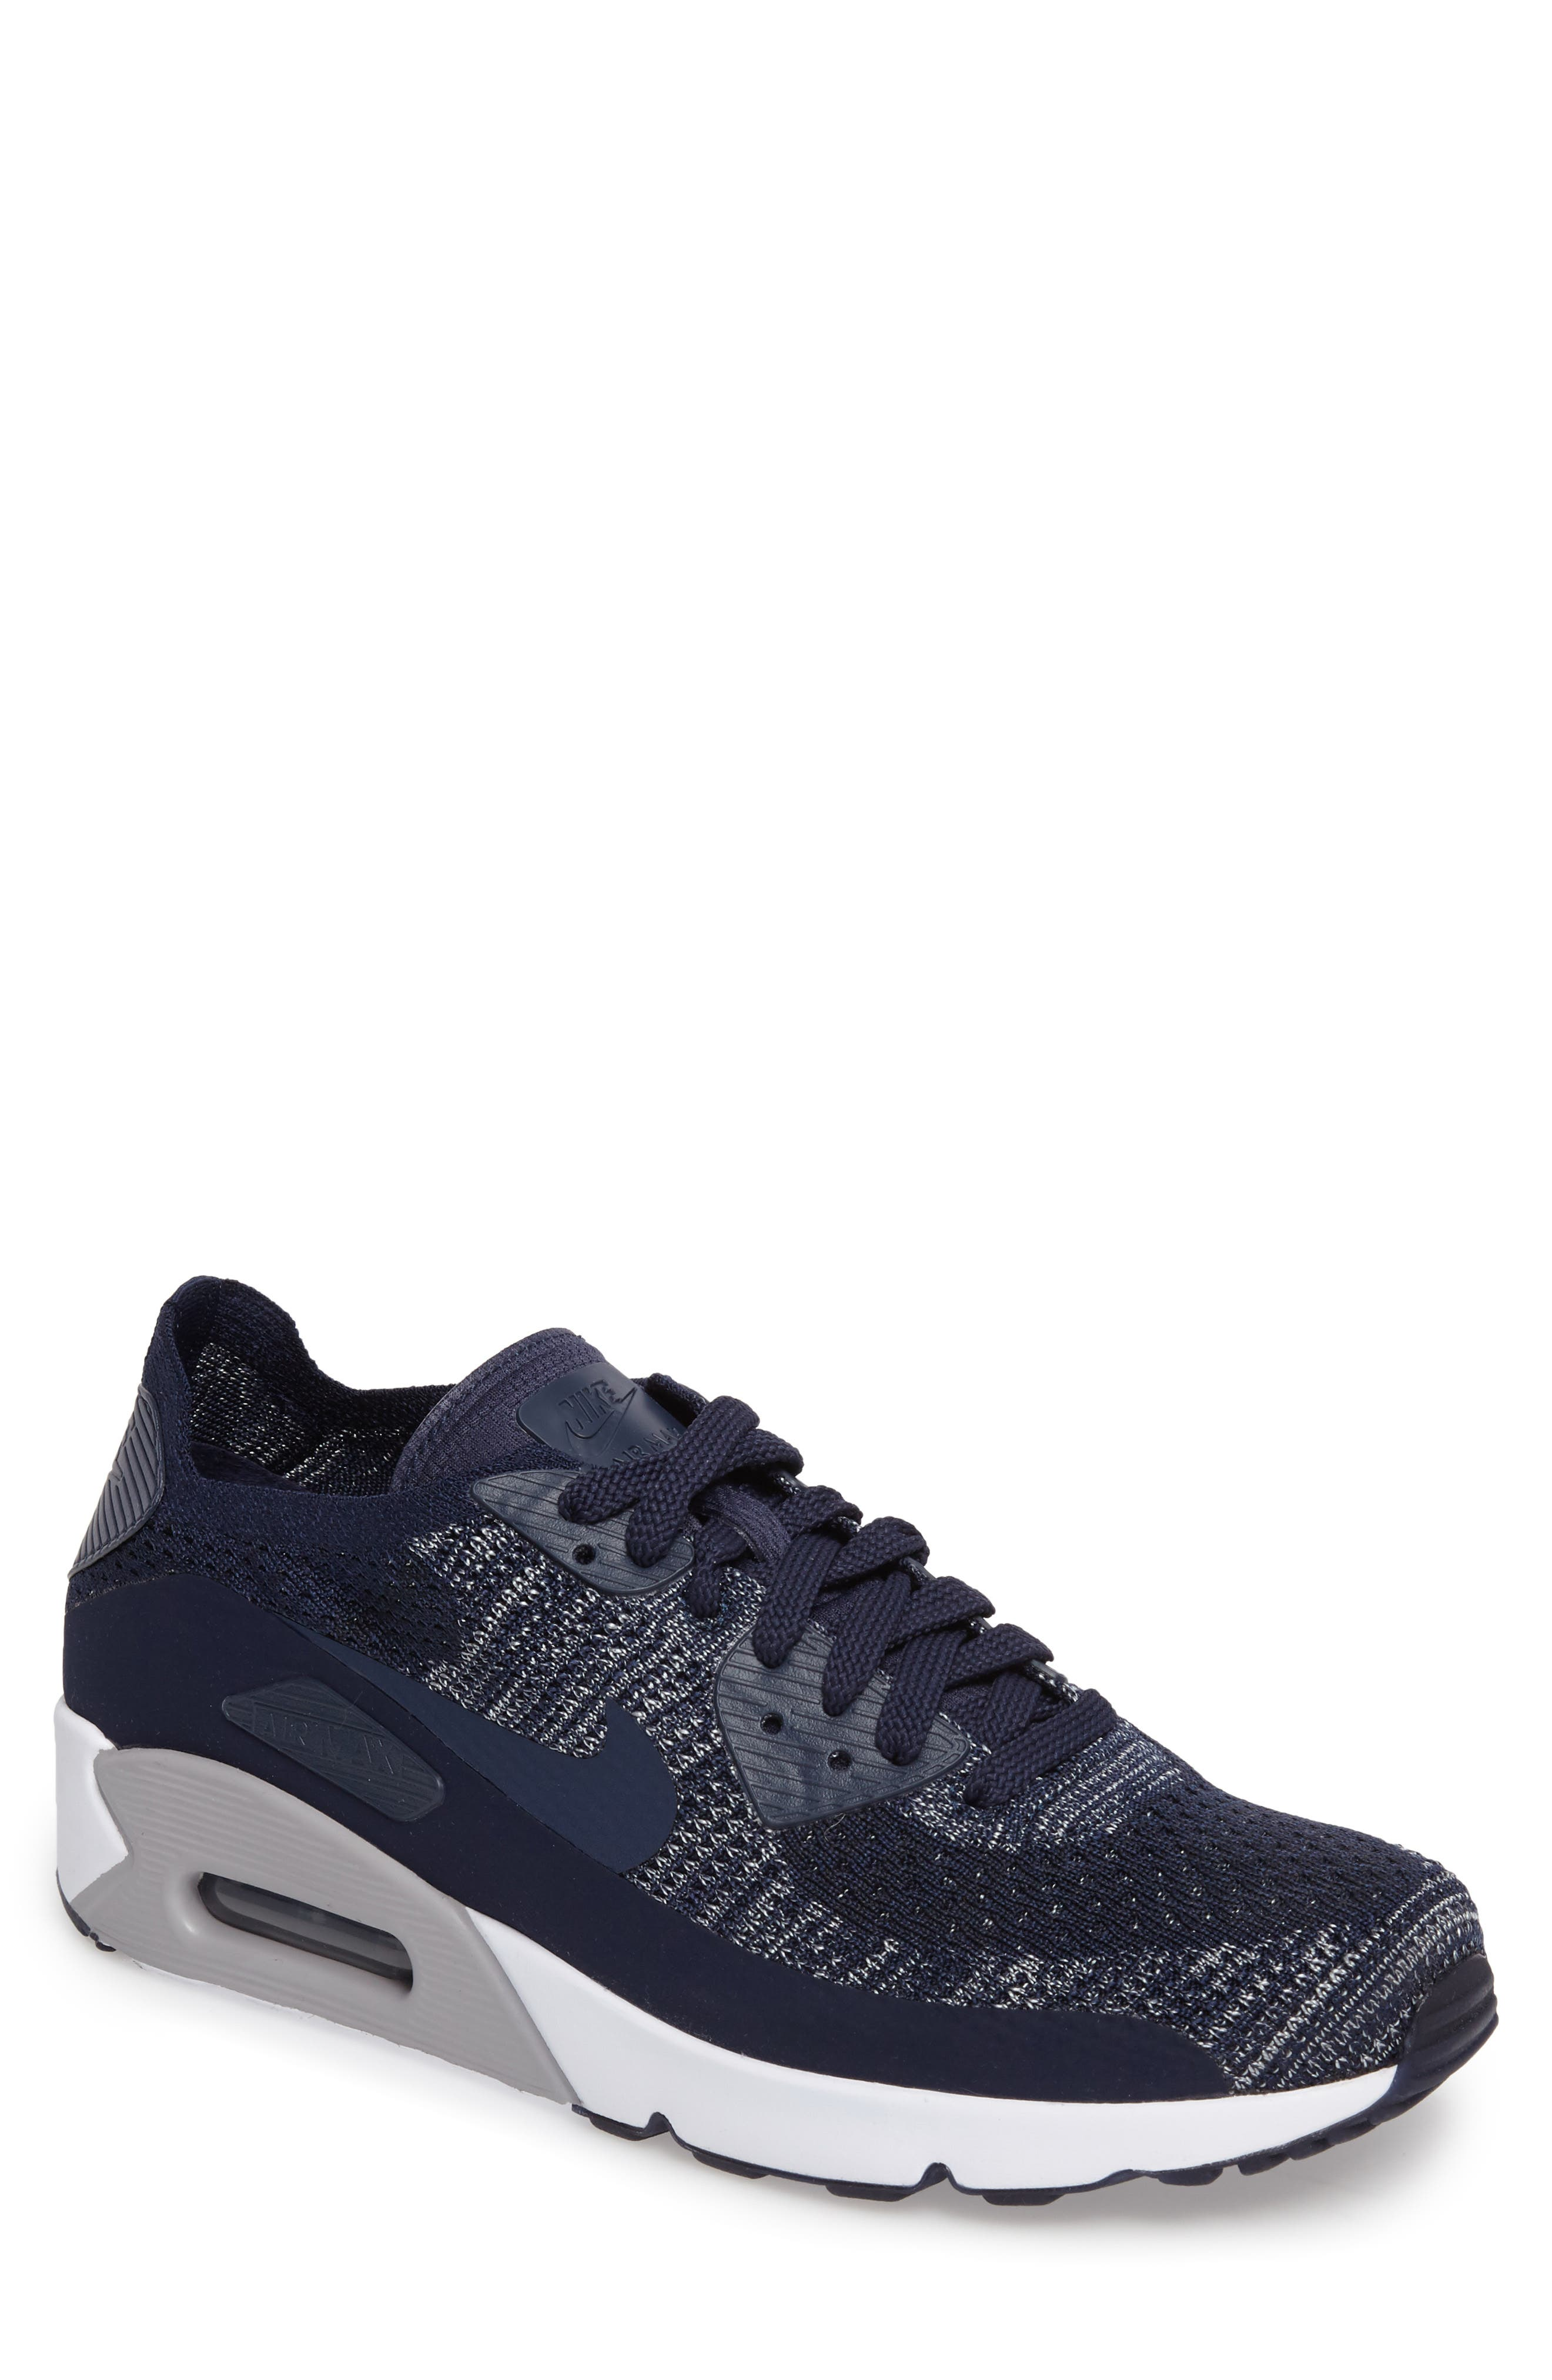 Nike Air Max 90 Ultra 2.0 Flyknit Sneaker (Men)